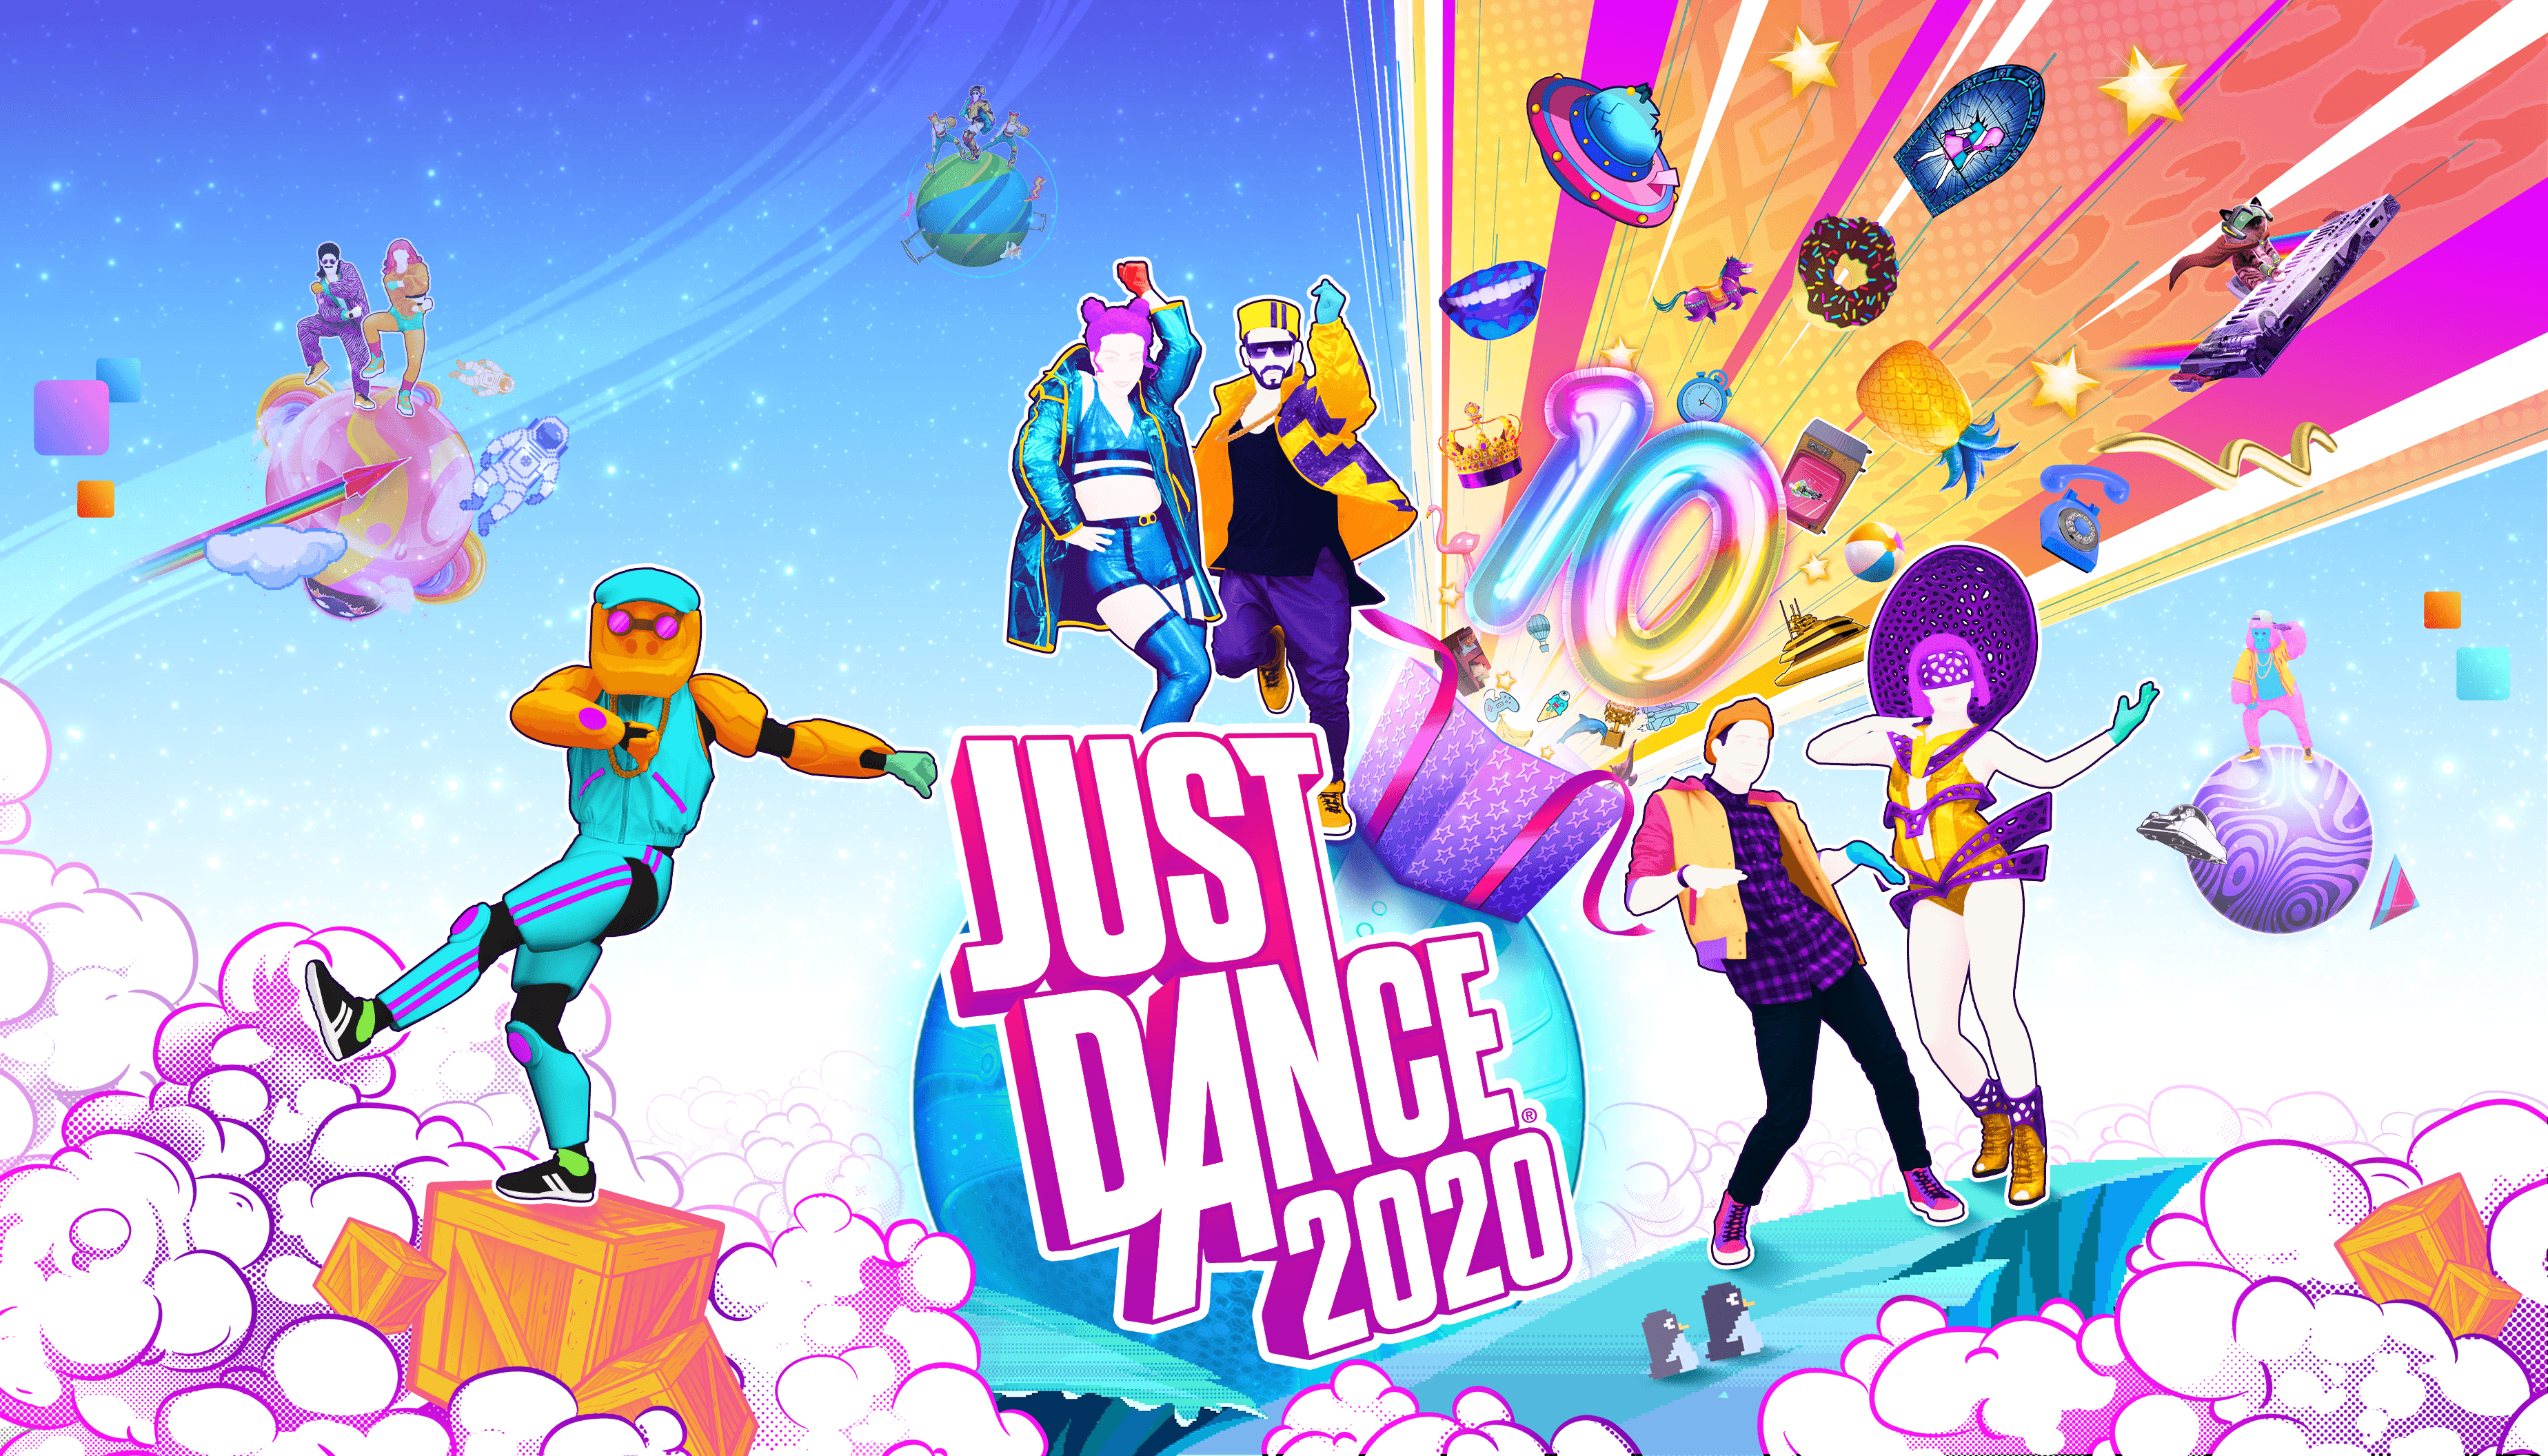 Just Dance 2020 Wallpapers   Top Just Dance 2020 Backgrounds 3696x2112